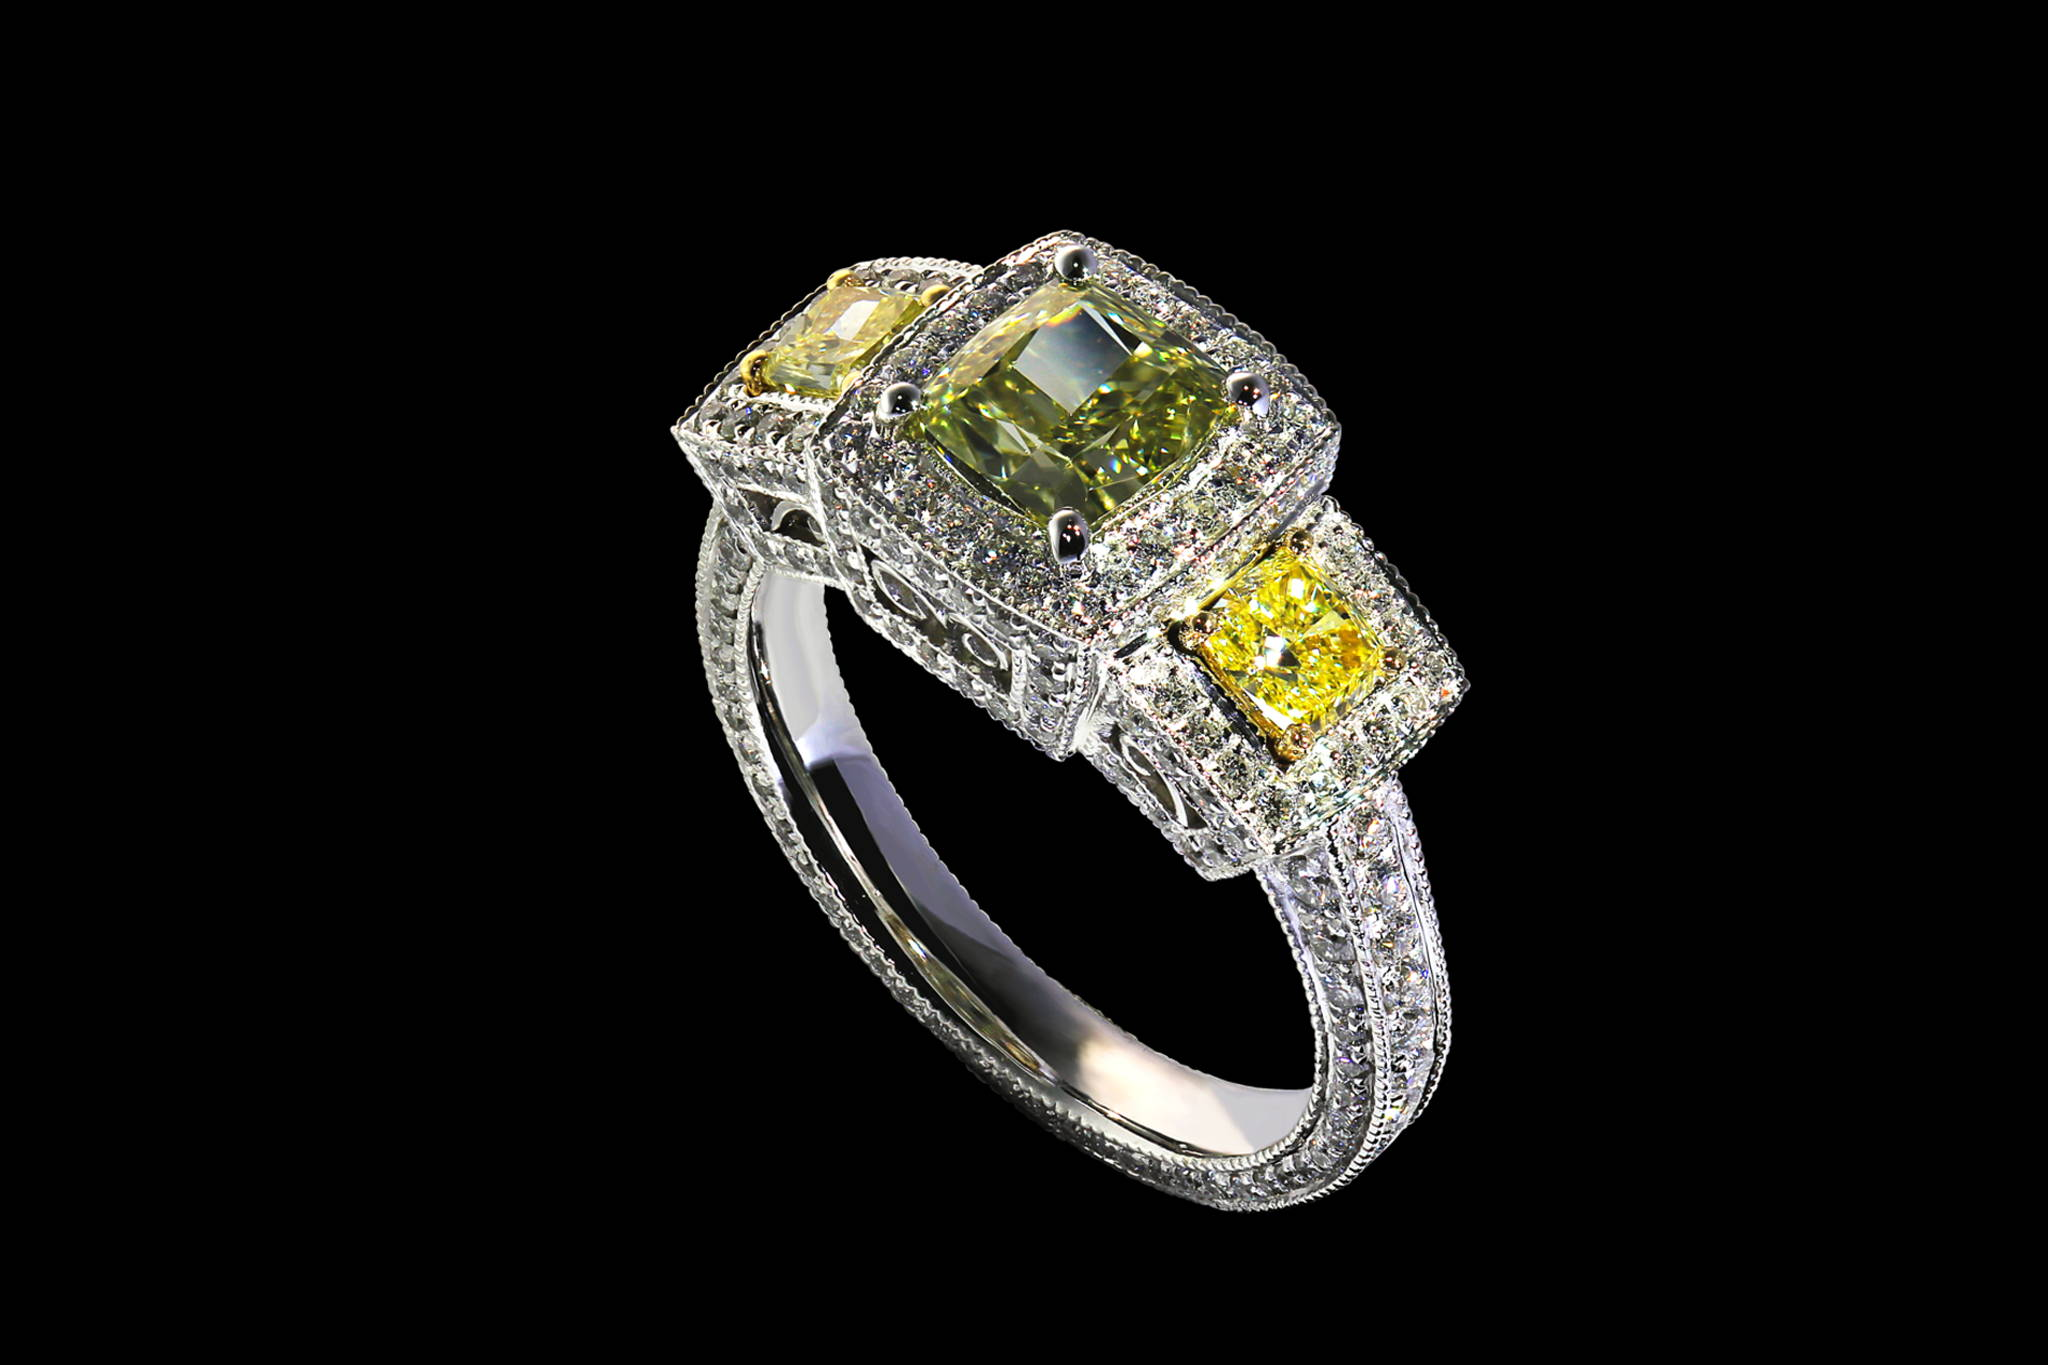 Highly Detailed Natural Colored Diamond Ring 45 degrees view